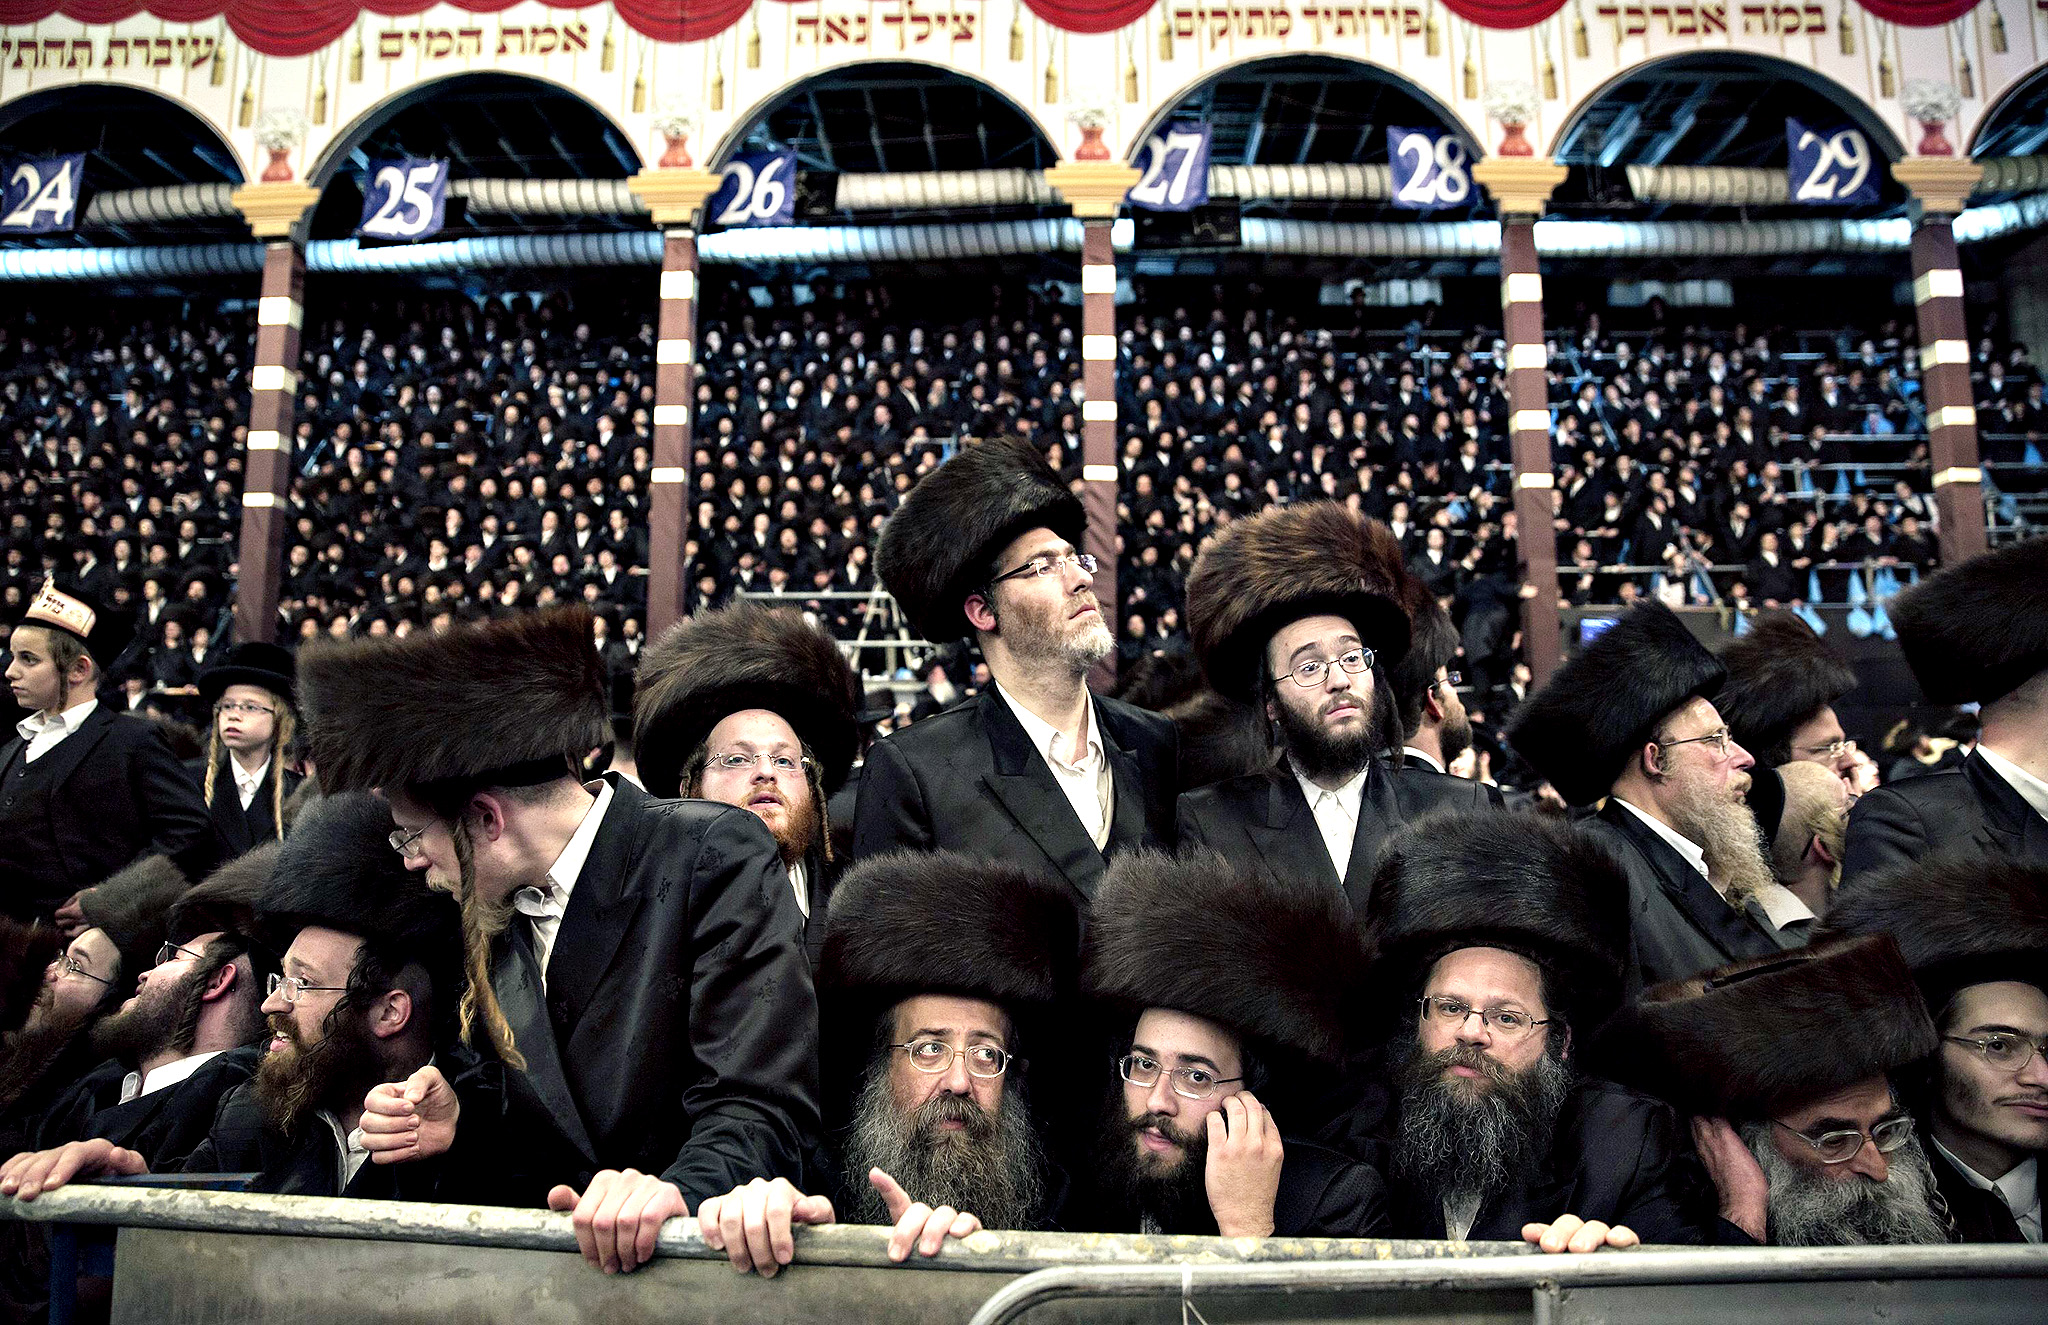 Ultra-orthodox Jews take part in celebrations after the wedding ceremony of Esther Rokeach and Avraham Safrin (not pictured) in Jerusalem June 11, 2014. Thousands gathered on Tuesday to celebrate the wedding between Safrin and Rokeach, the granddaughter of the spiritual leader of the Belz Hasidim, which is one of the largest Hasidic movements in the world.